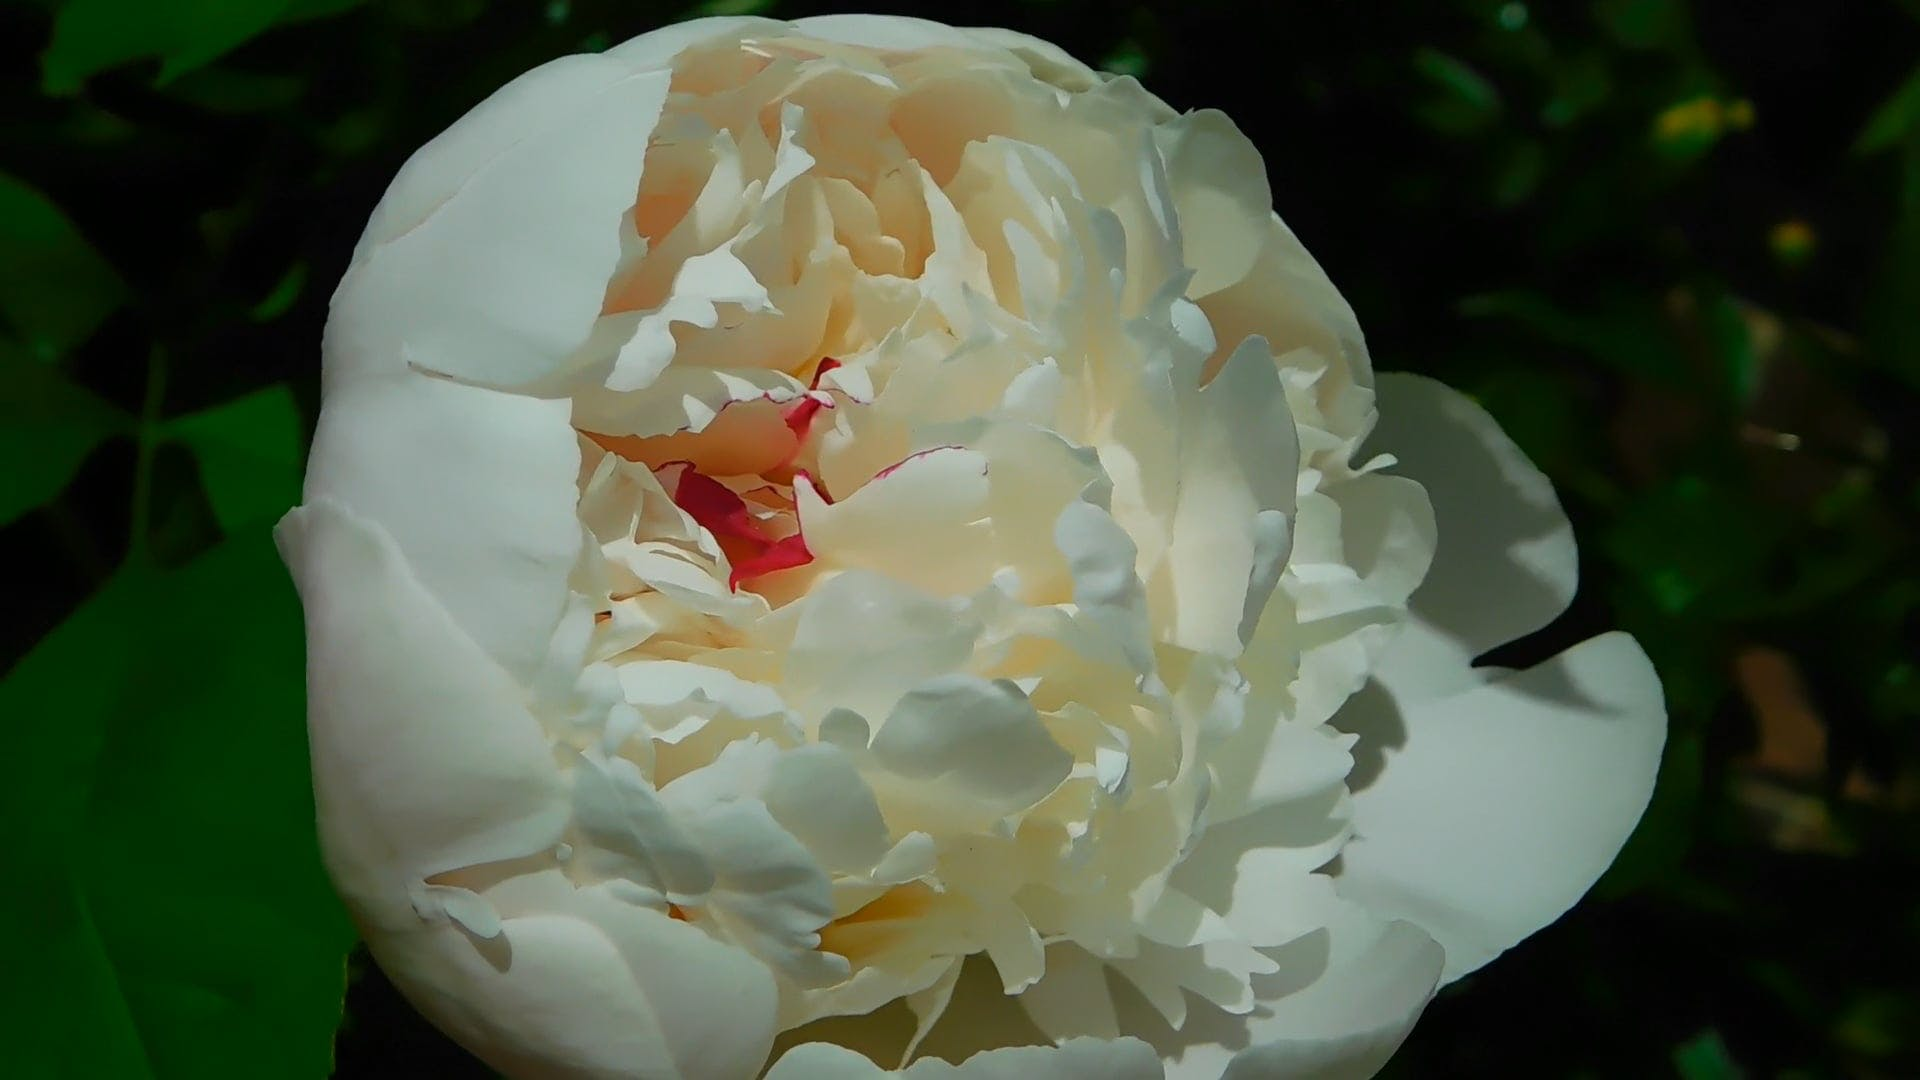 Close-up Shot Of White Flower